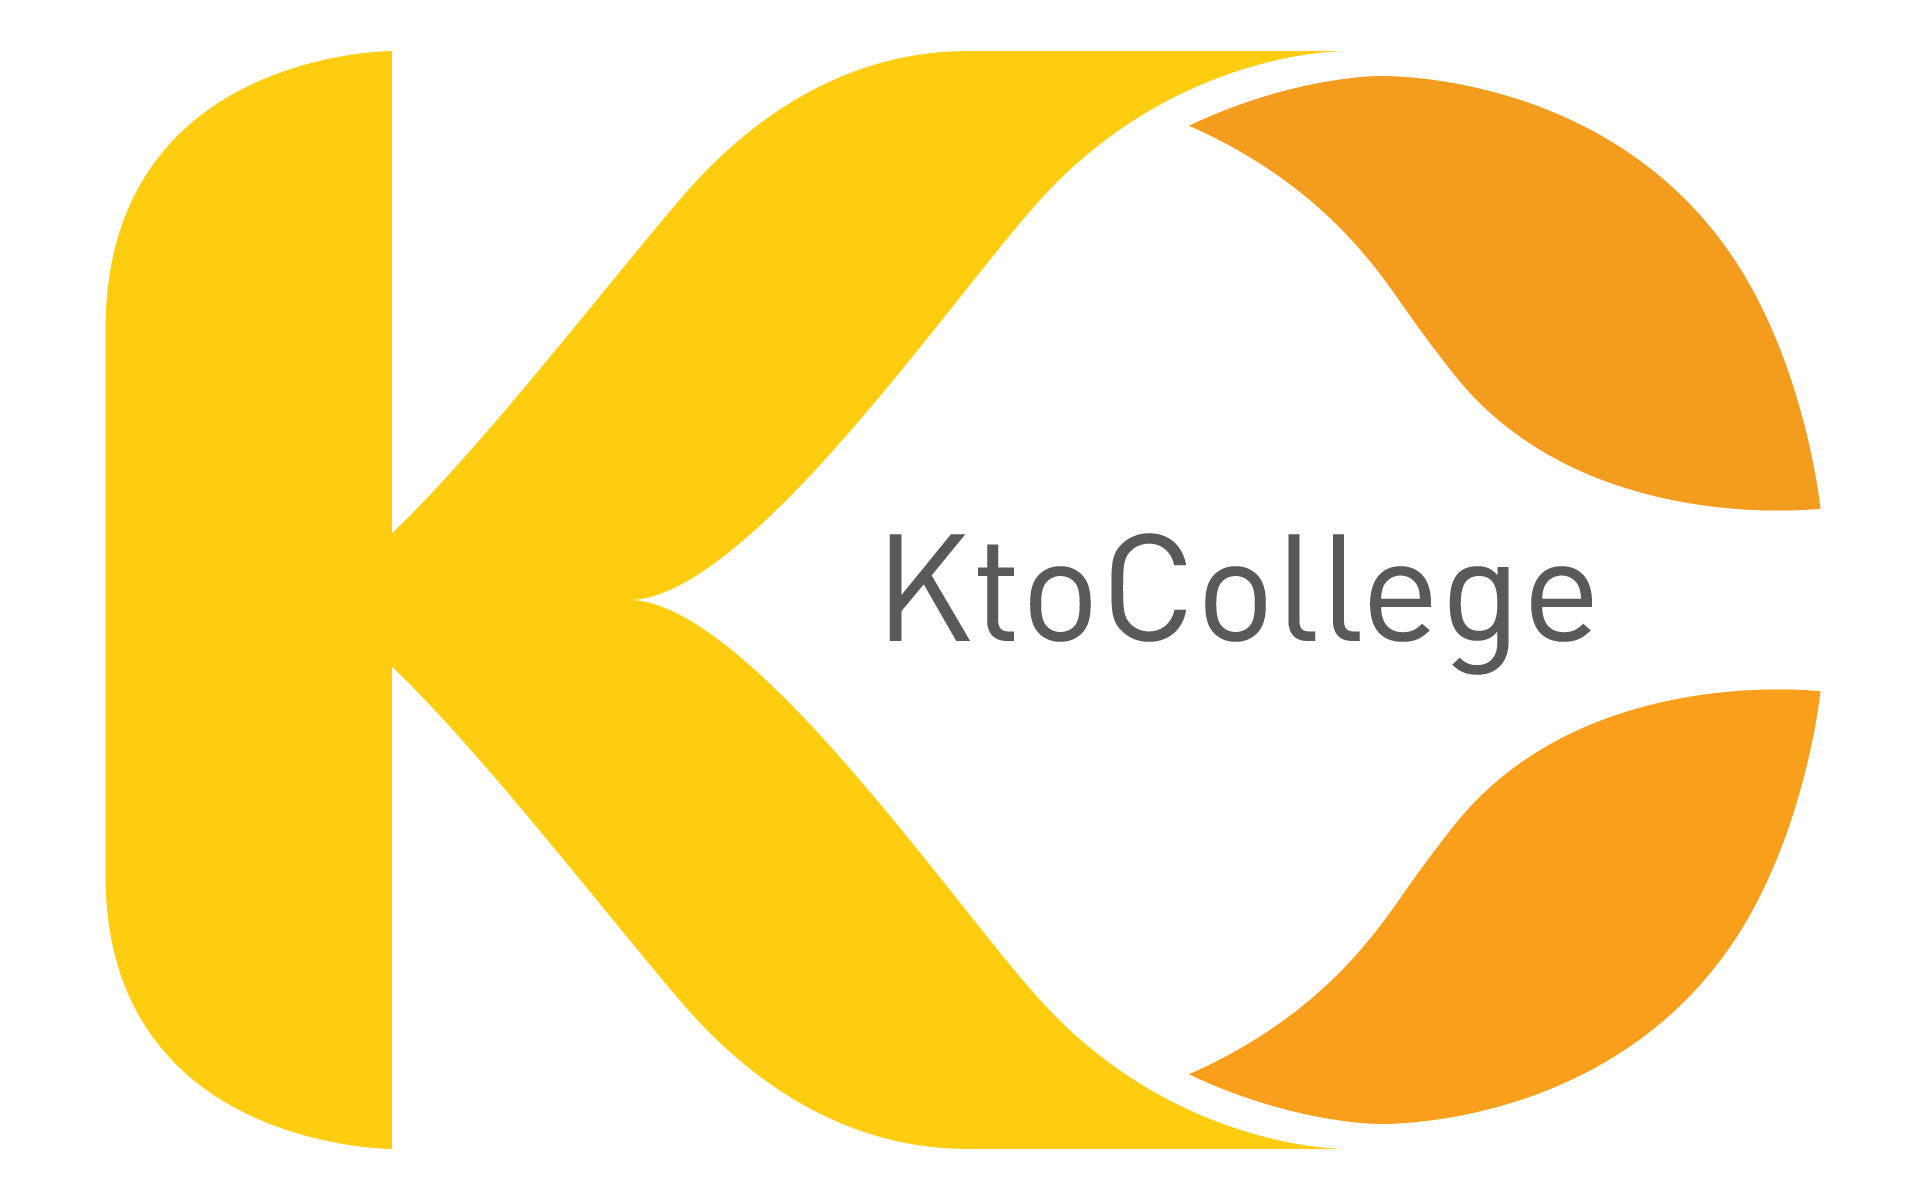 K to College's Logo